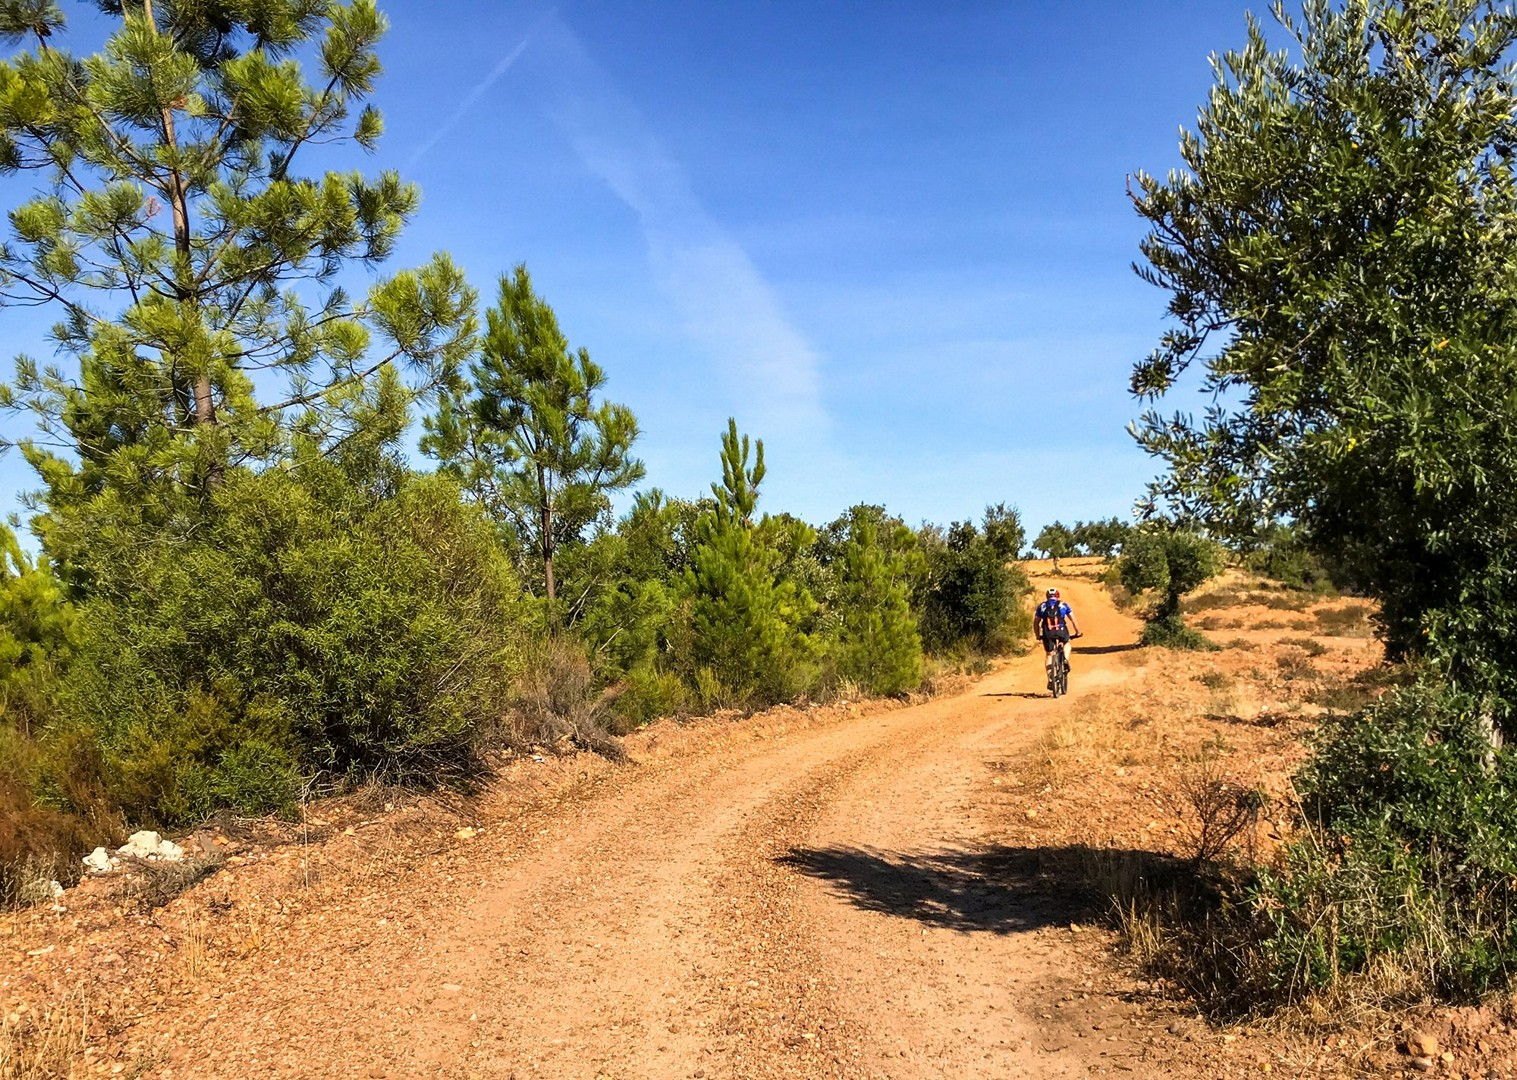 roman-trails-in-portugal-saddle-skedaddle-holidays.jpg - Portugal - Roman Trails - Guided Mountain Bike Holiday - Mountain Biking